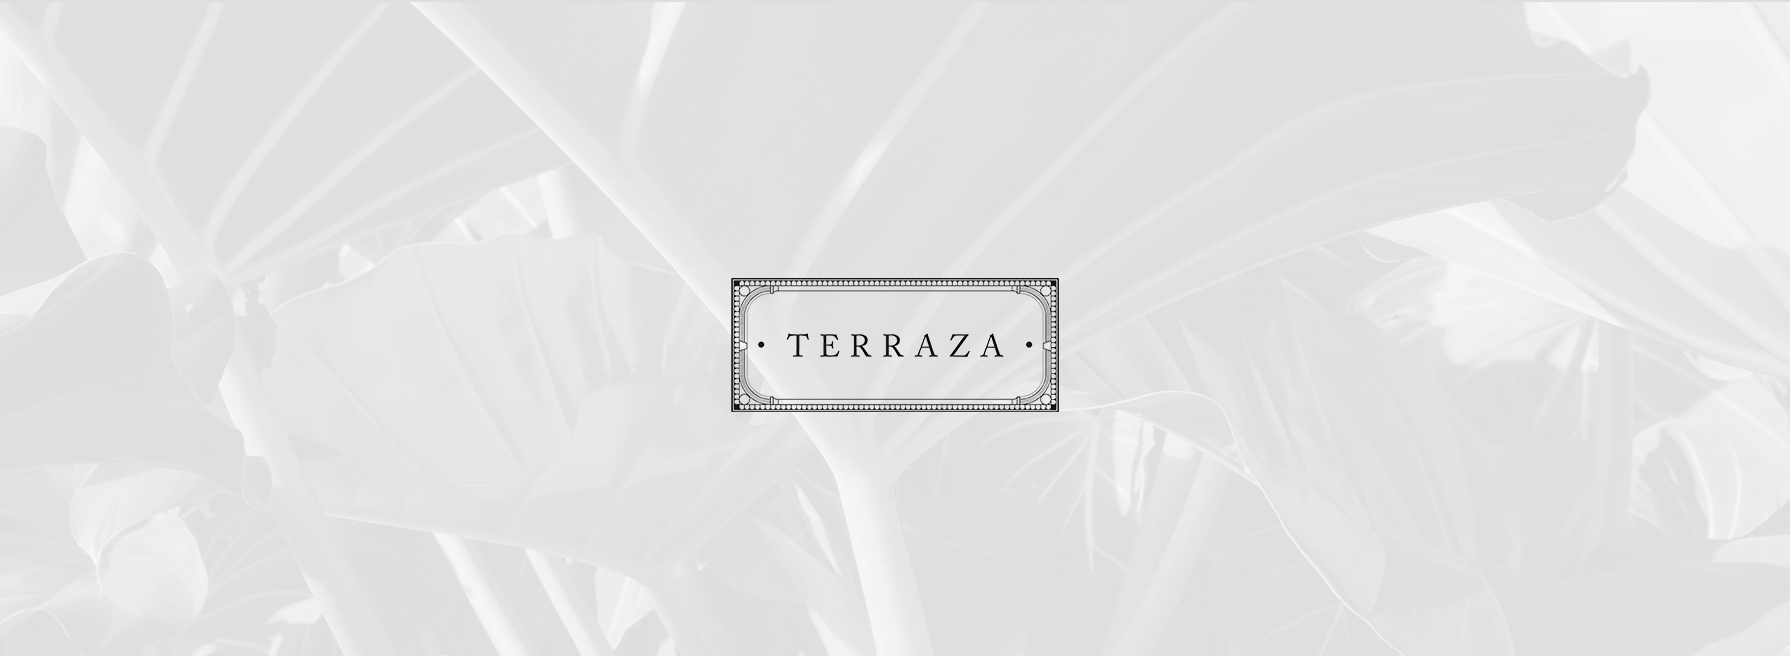 Terraza Antonio S Group Of Restaurants